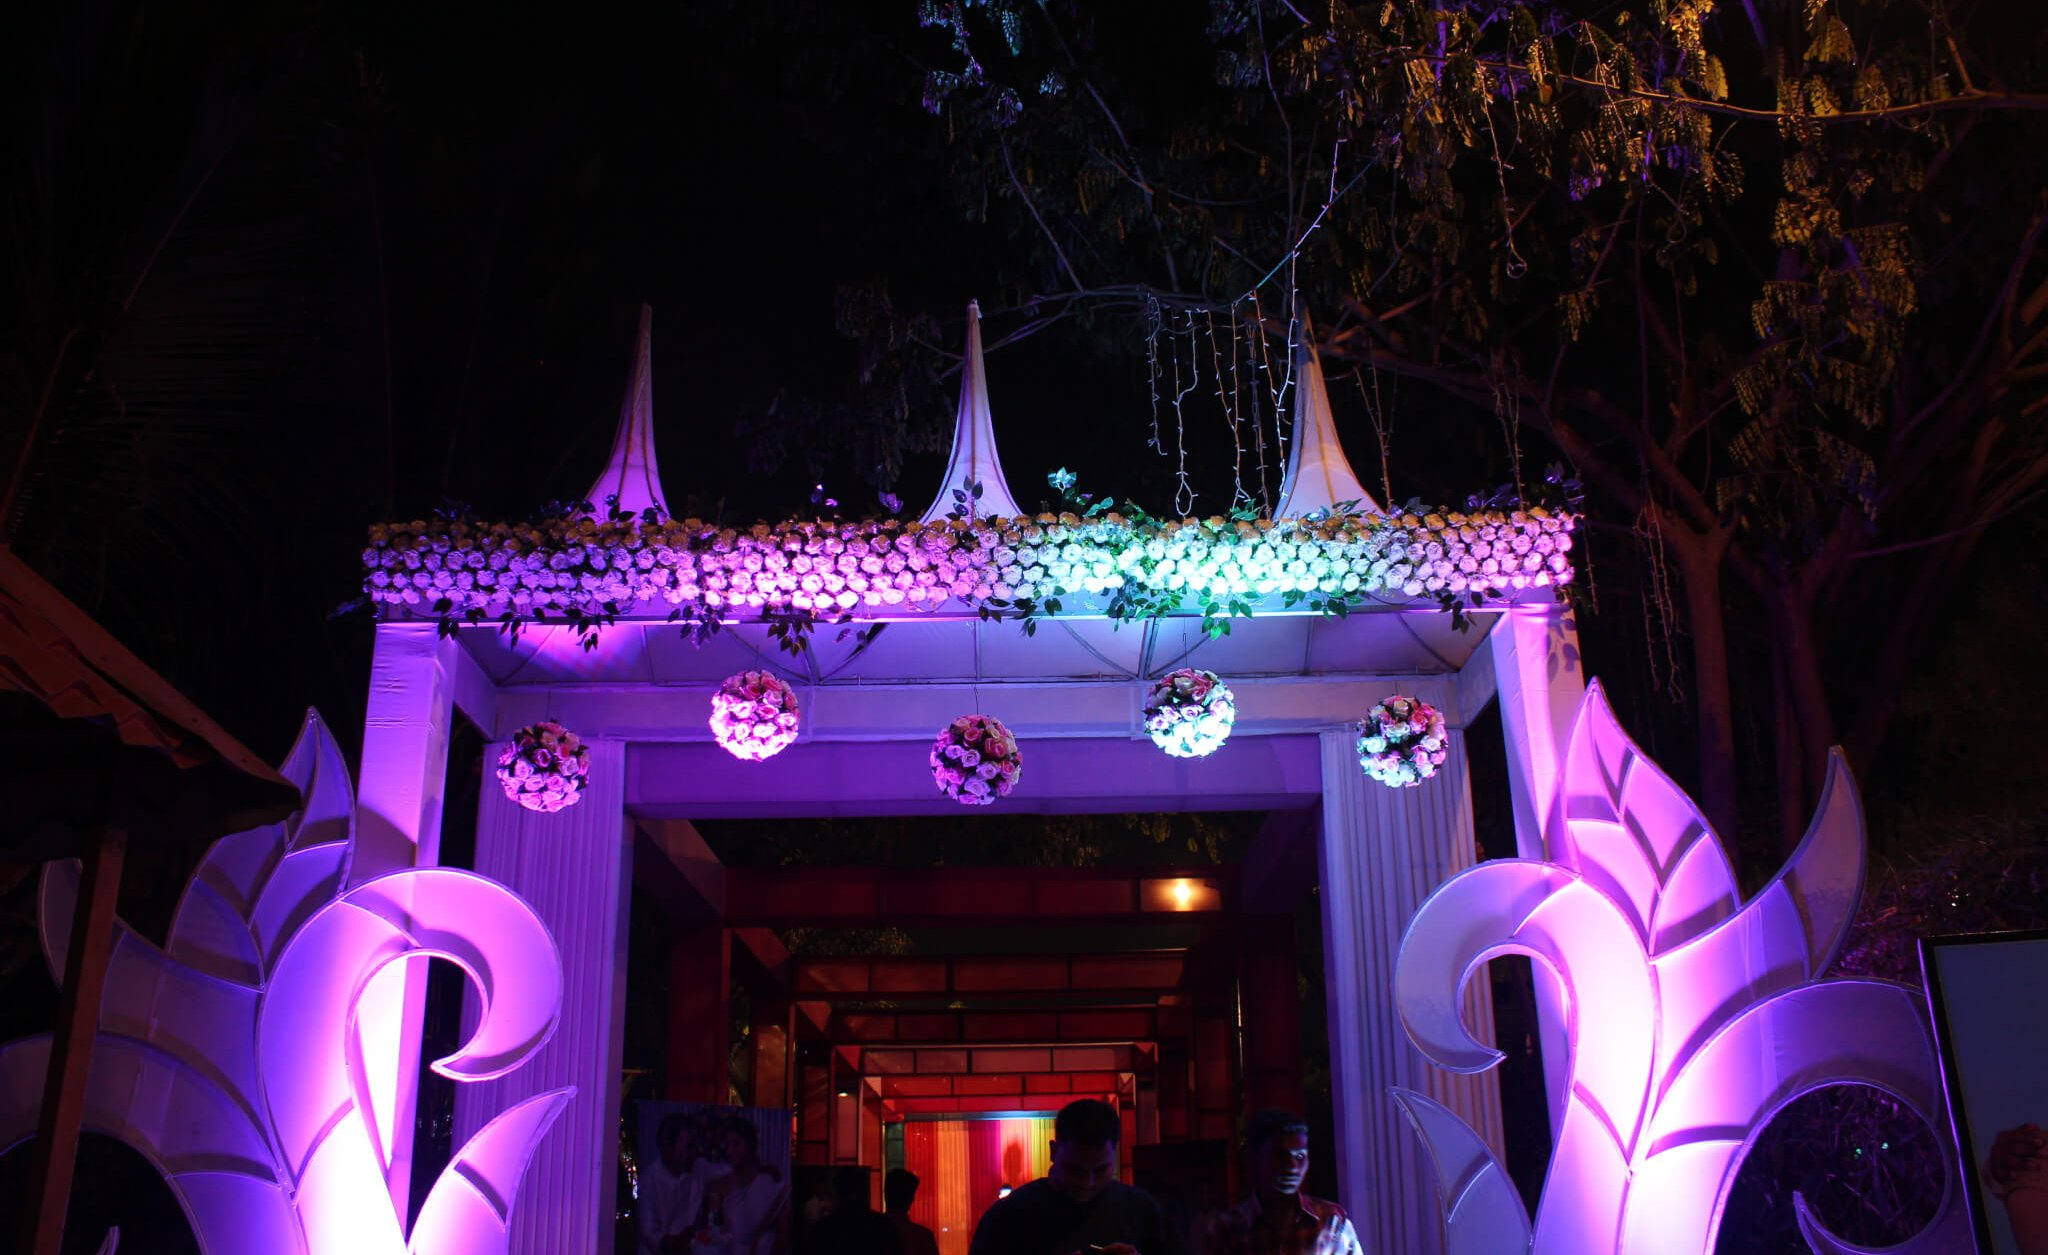 Entrance of Exotica Lawn in the night